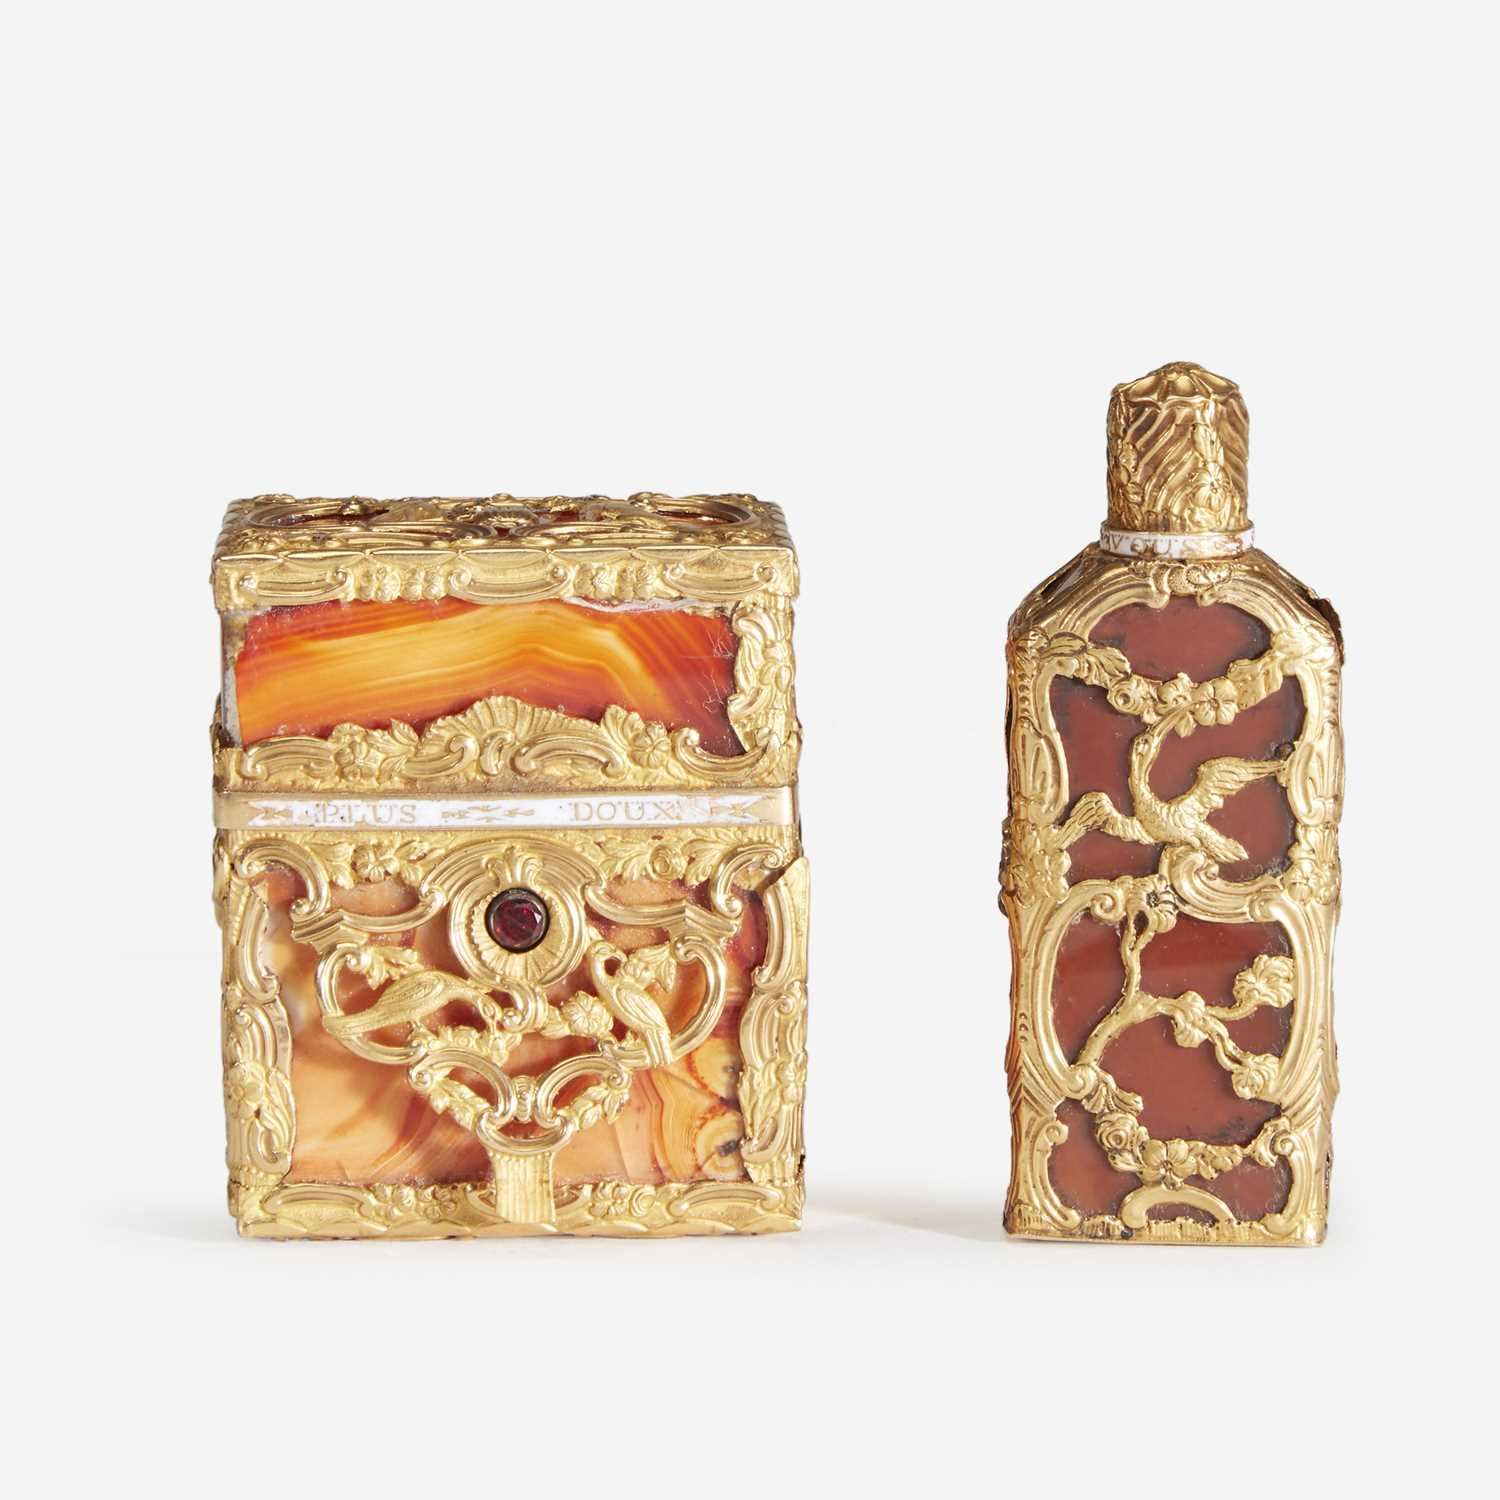 A George III Gold-Mounted Hardstone Necessaire and Perfume